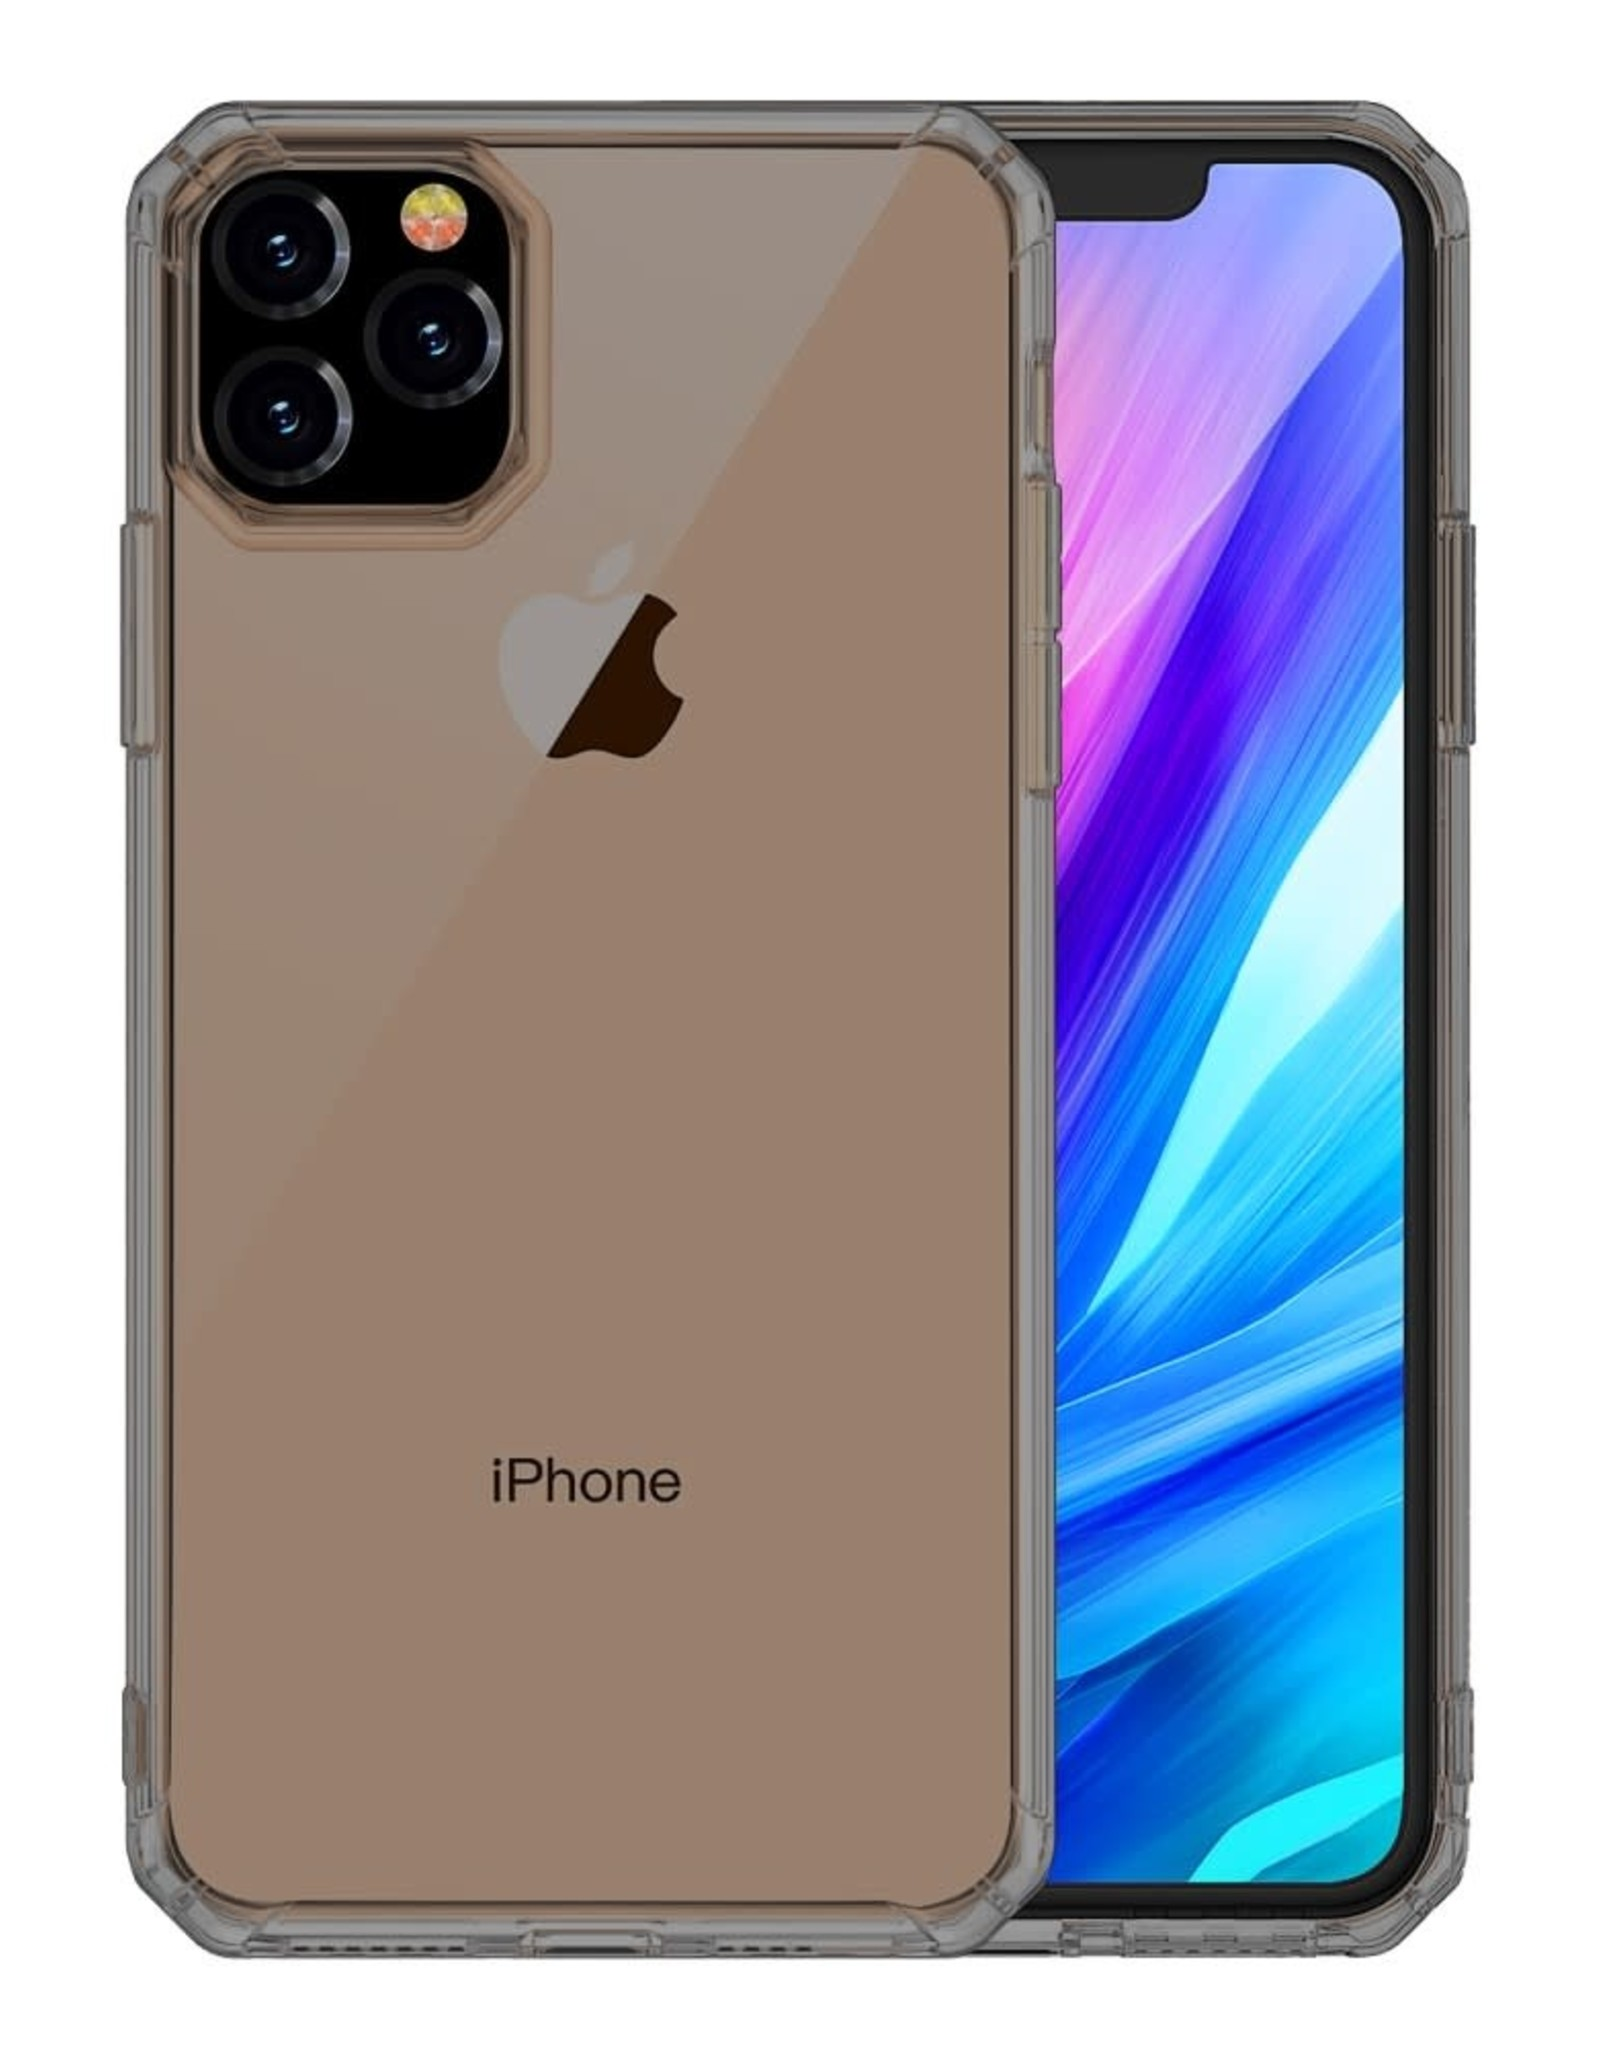 LEEU DESIGN Air Cushion Shockproof TPU Shell Cover for iPhone 11 Pro 5.8 inch (2019) - Smoke